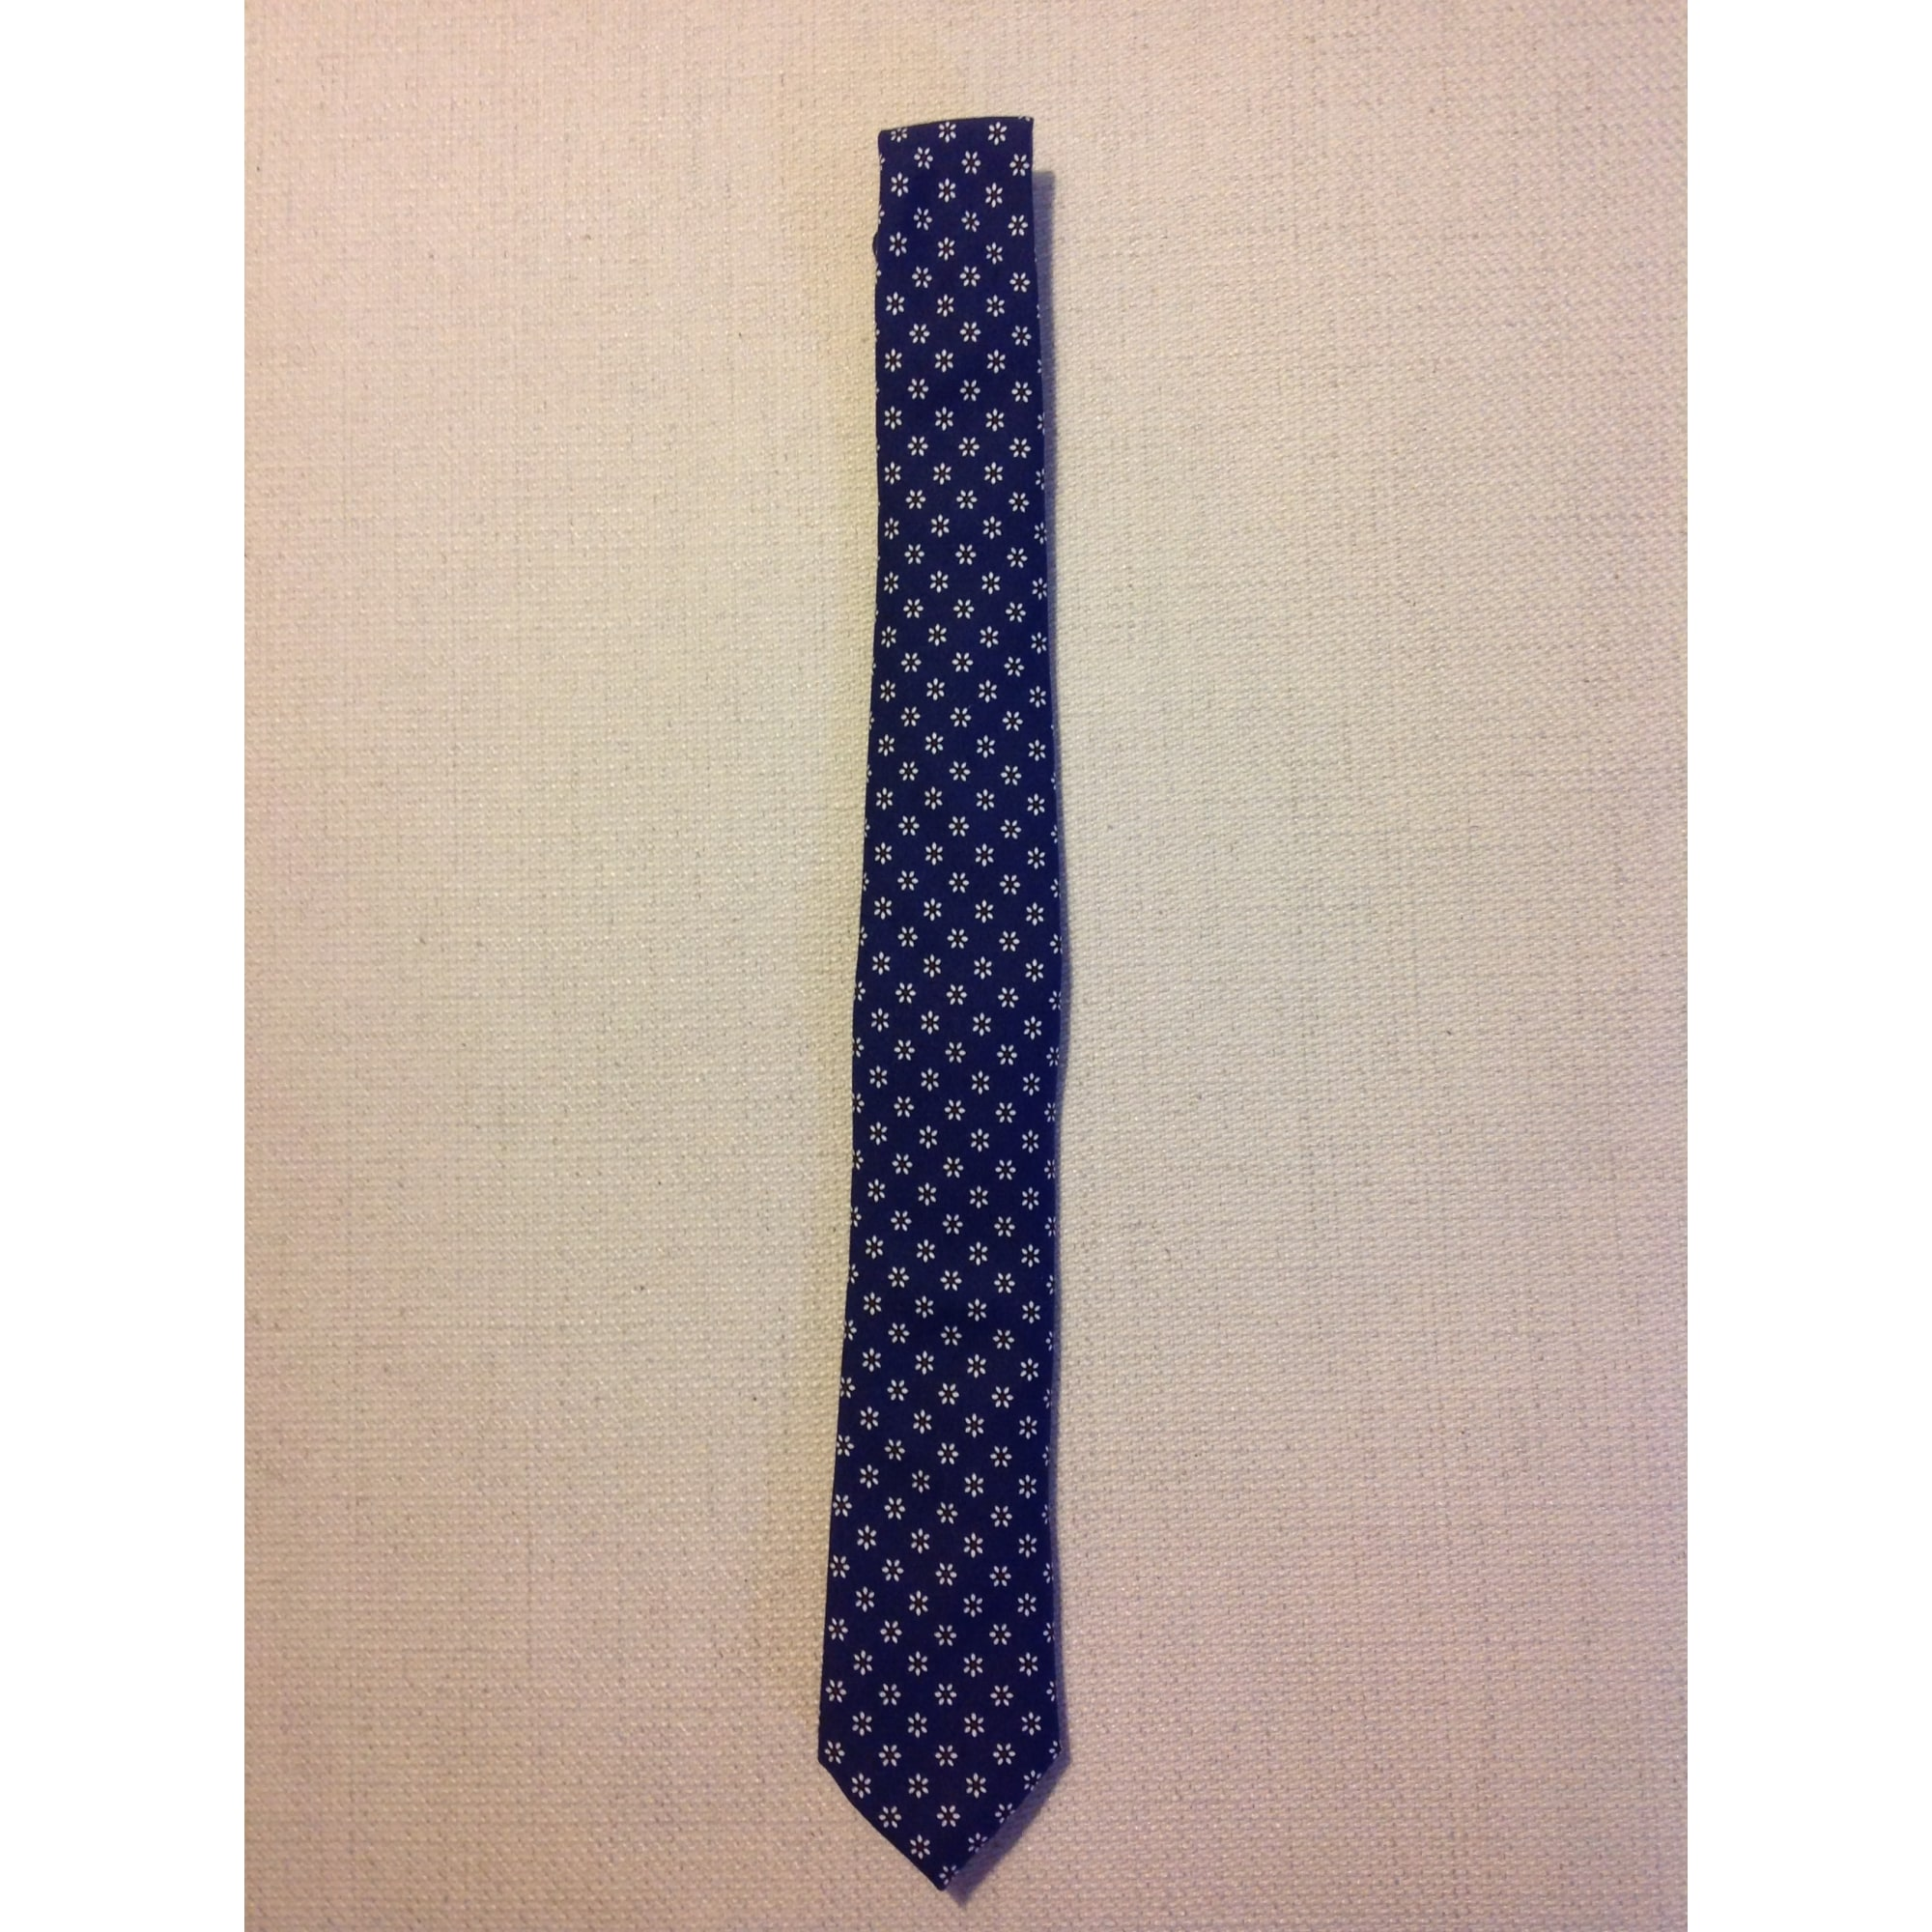 17016a56a636 Tie MASSIMO DUTTI Blue, navy, turquoise